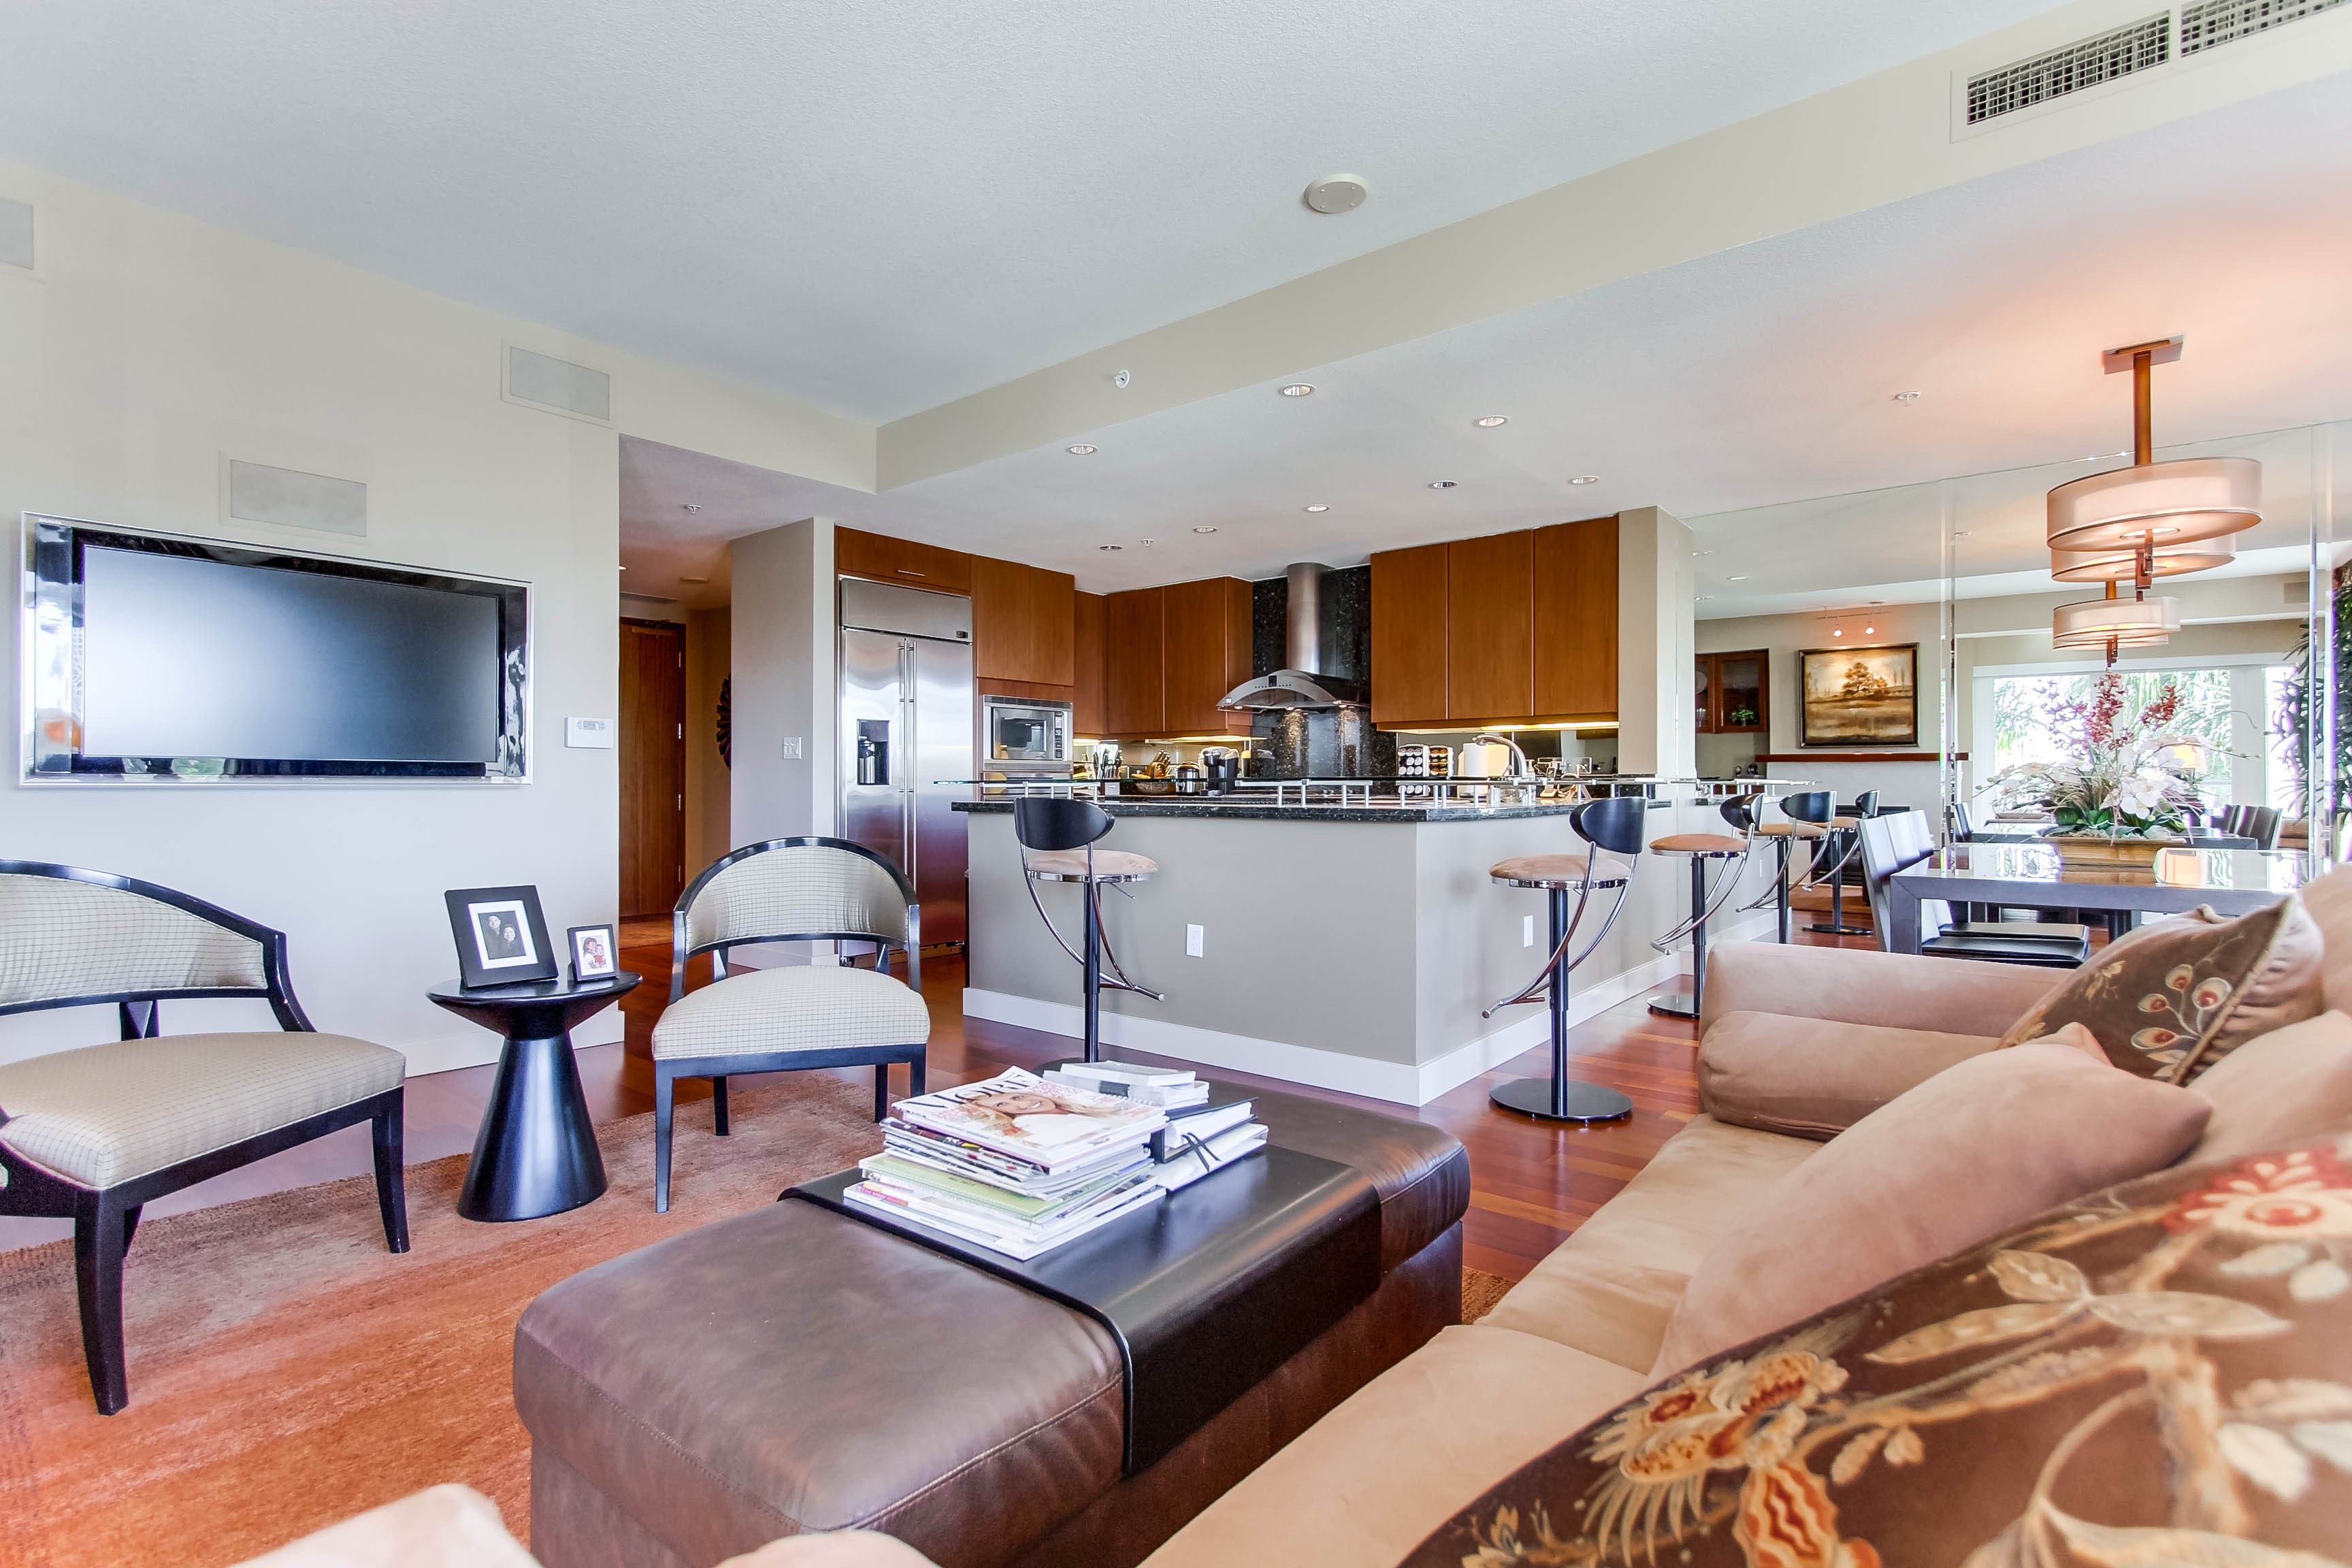 2 Bedroom Suites San Diego 28 Images Two Bedroom